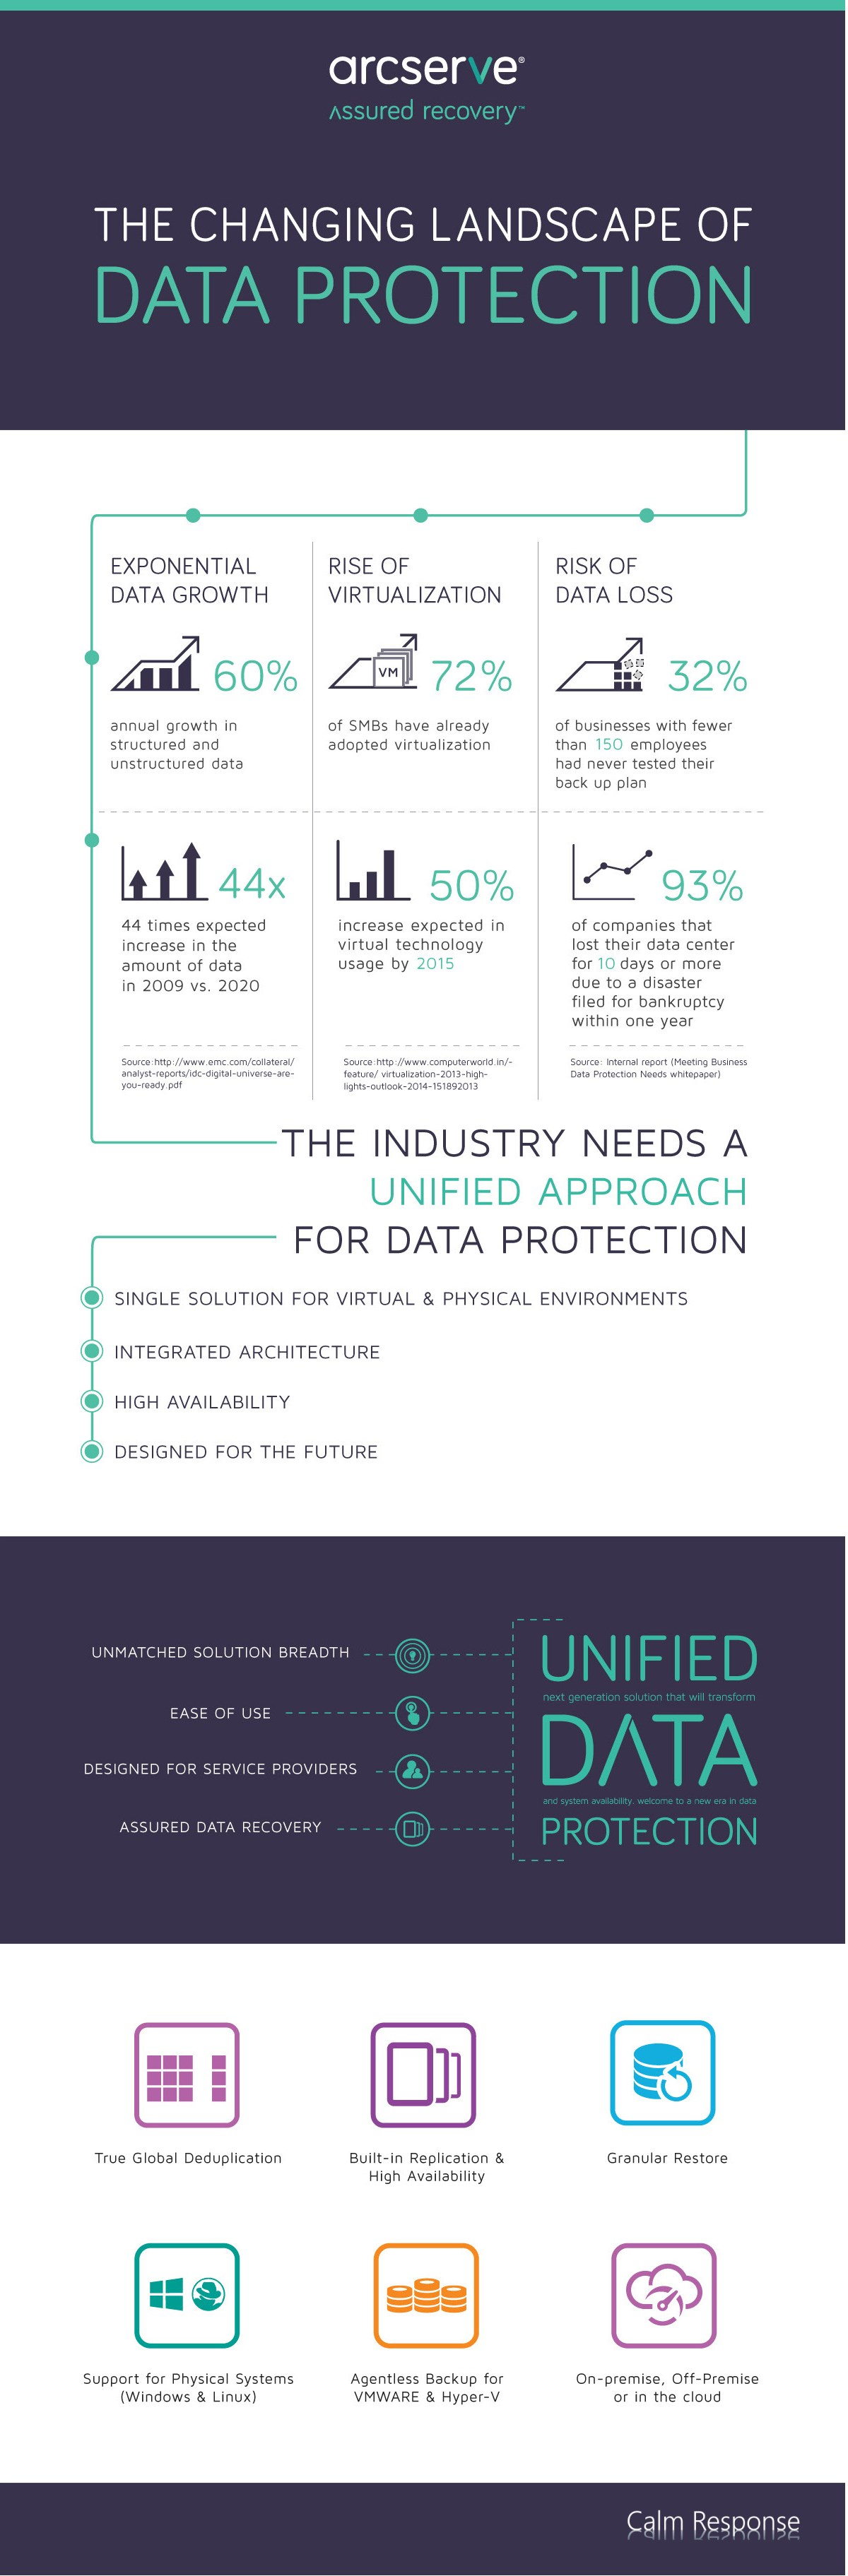 ArcServe approach for data protection